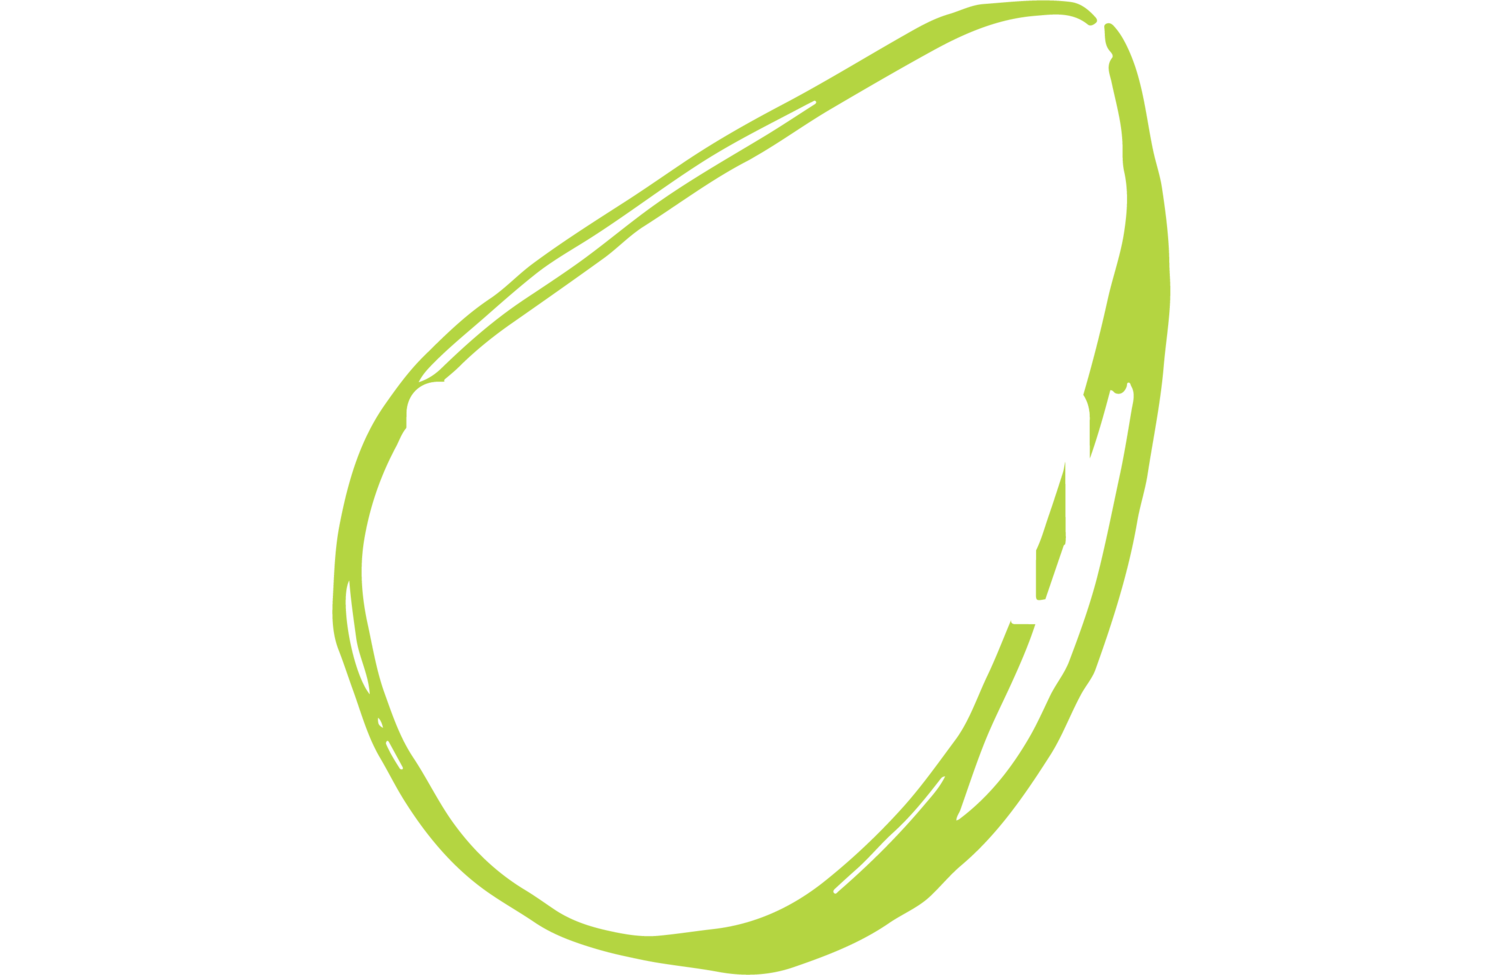 Avocados Restaurant